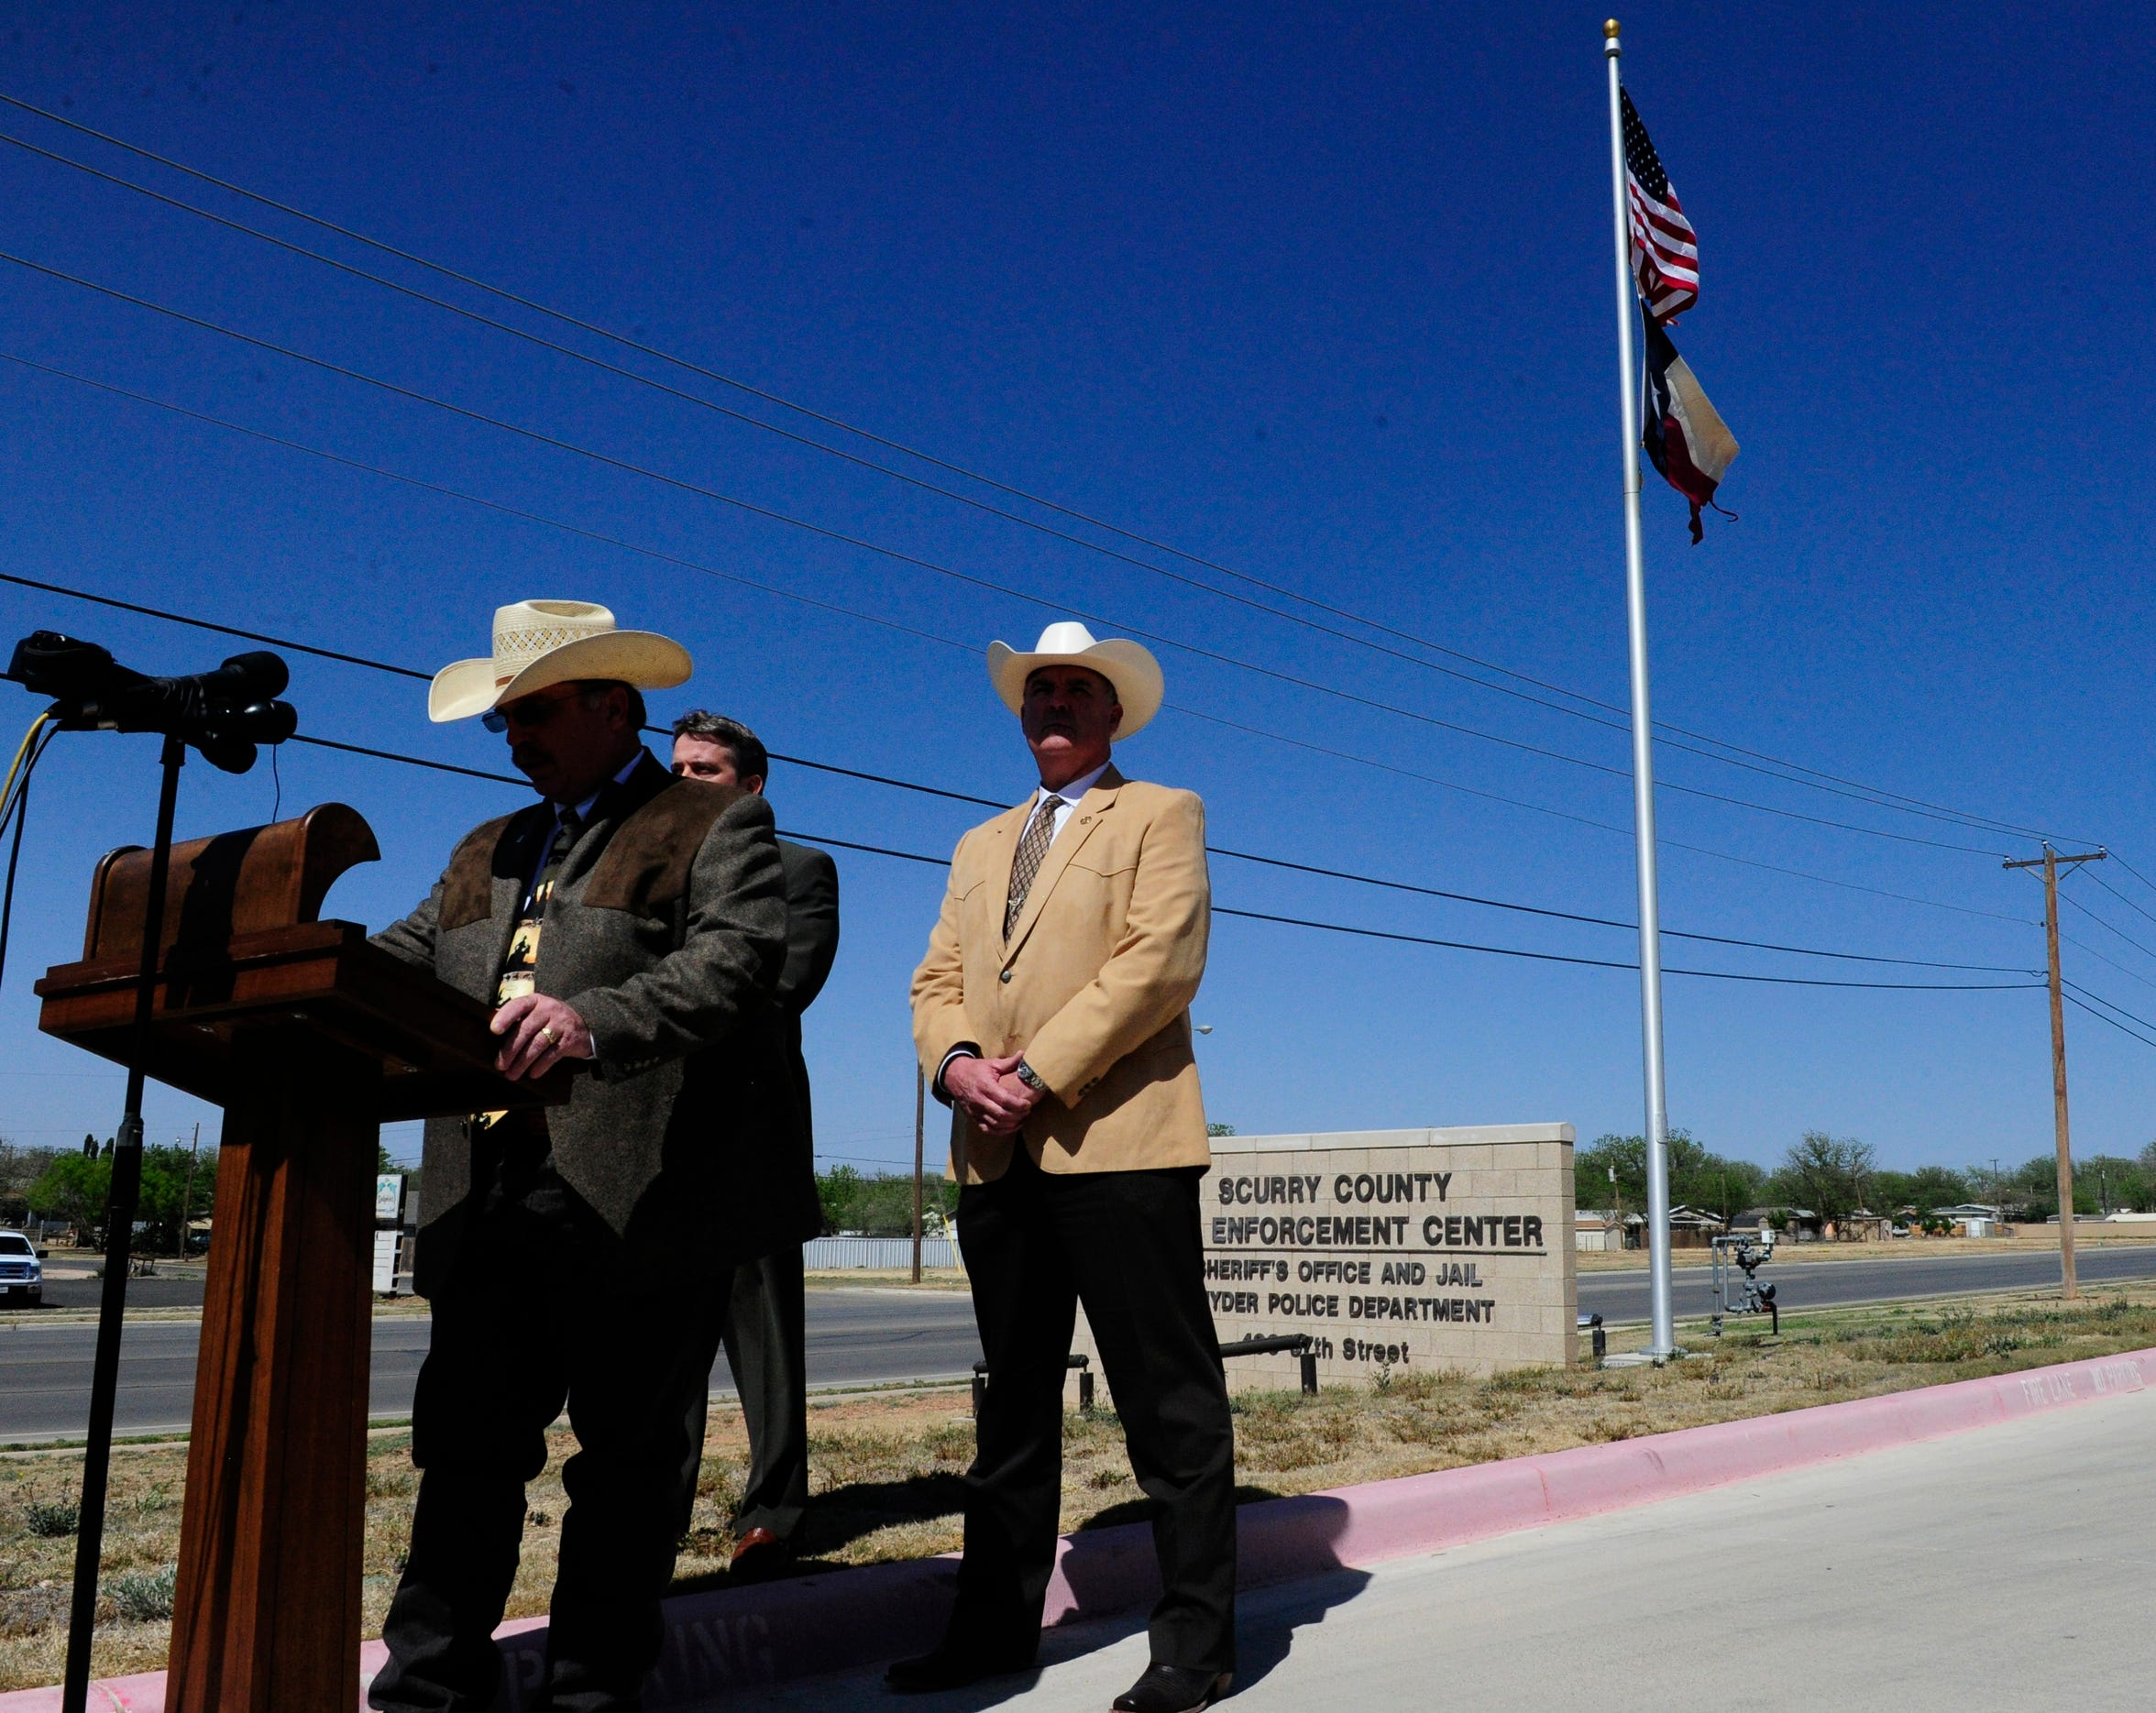 Scurry County Sheriff Trey Wilson, along with the Texas Department of Public Safety and the FBI, held a brief news conference in 2013 to announce that the remains found in Scurry County were those of missing teenager Hailey Dunn.